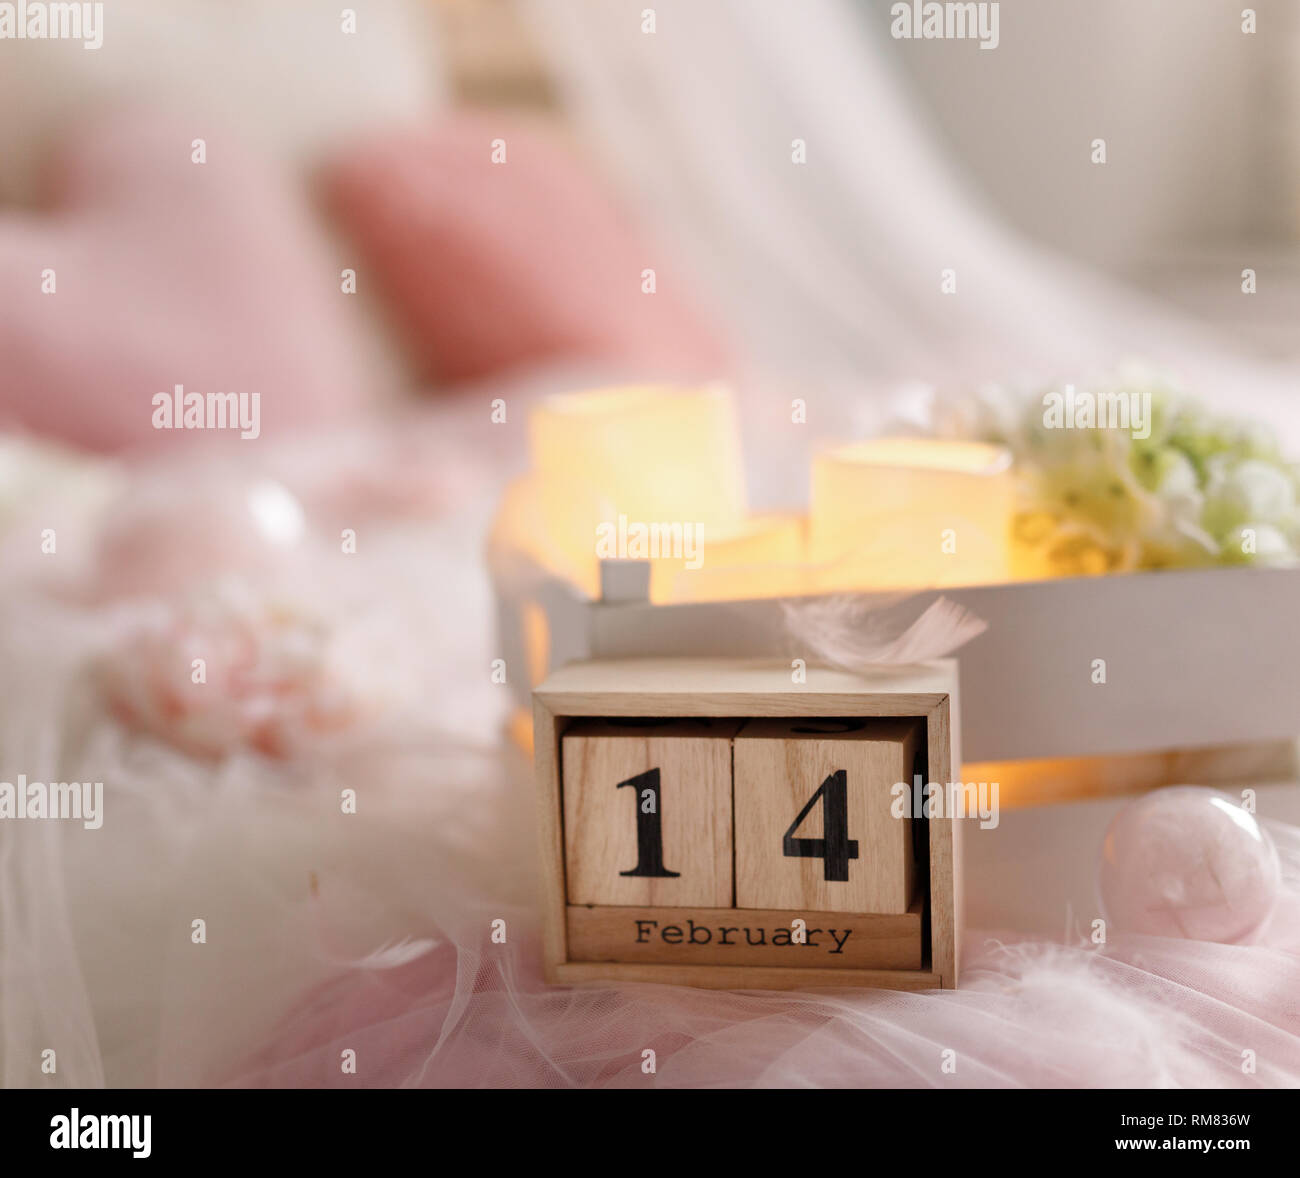 wooden calendar the 14 th of february on the  rose bed - Stock Image